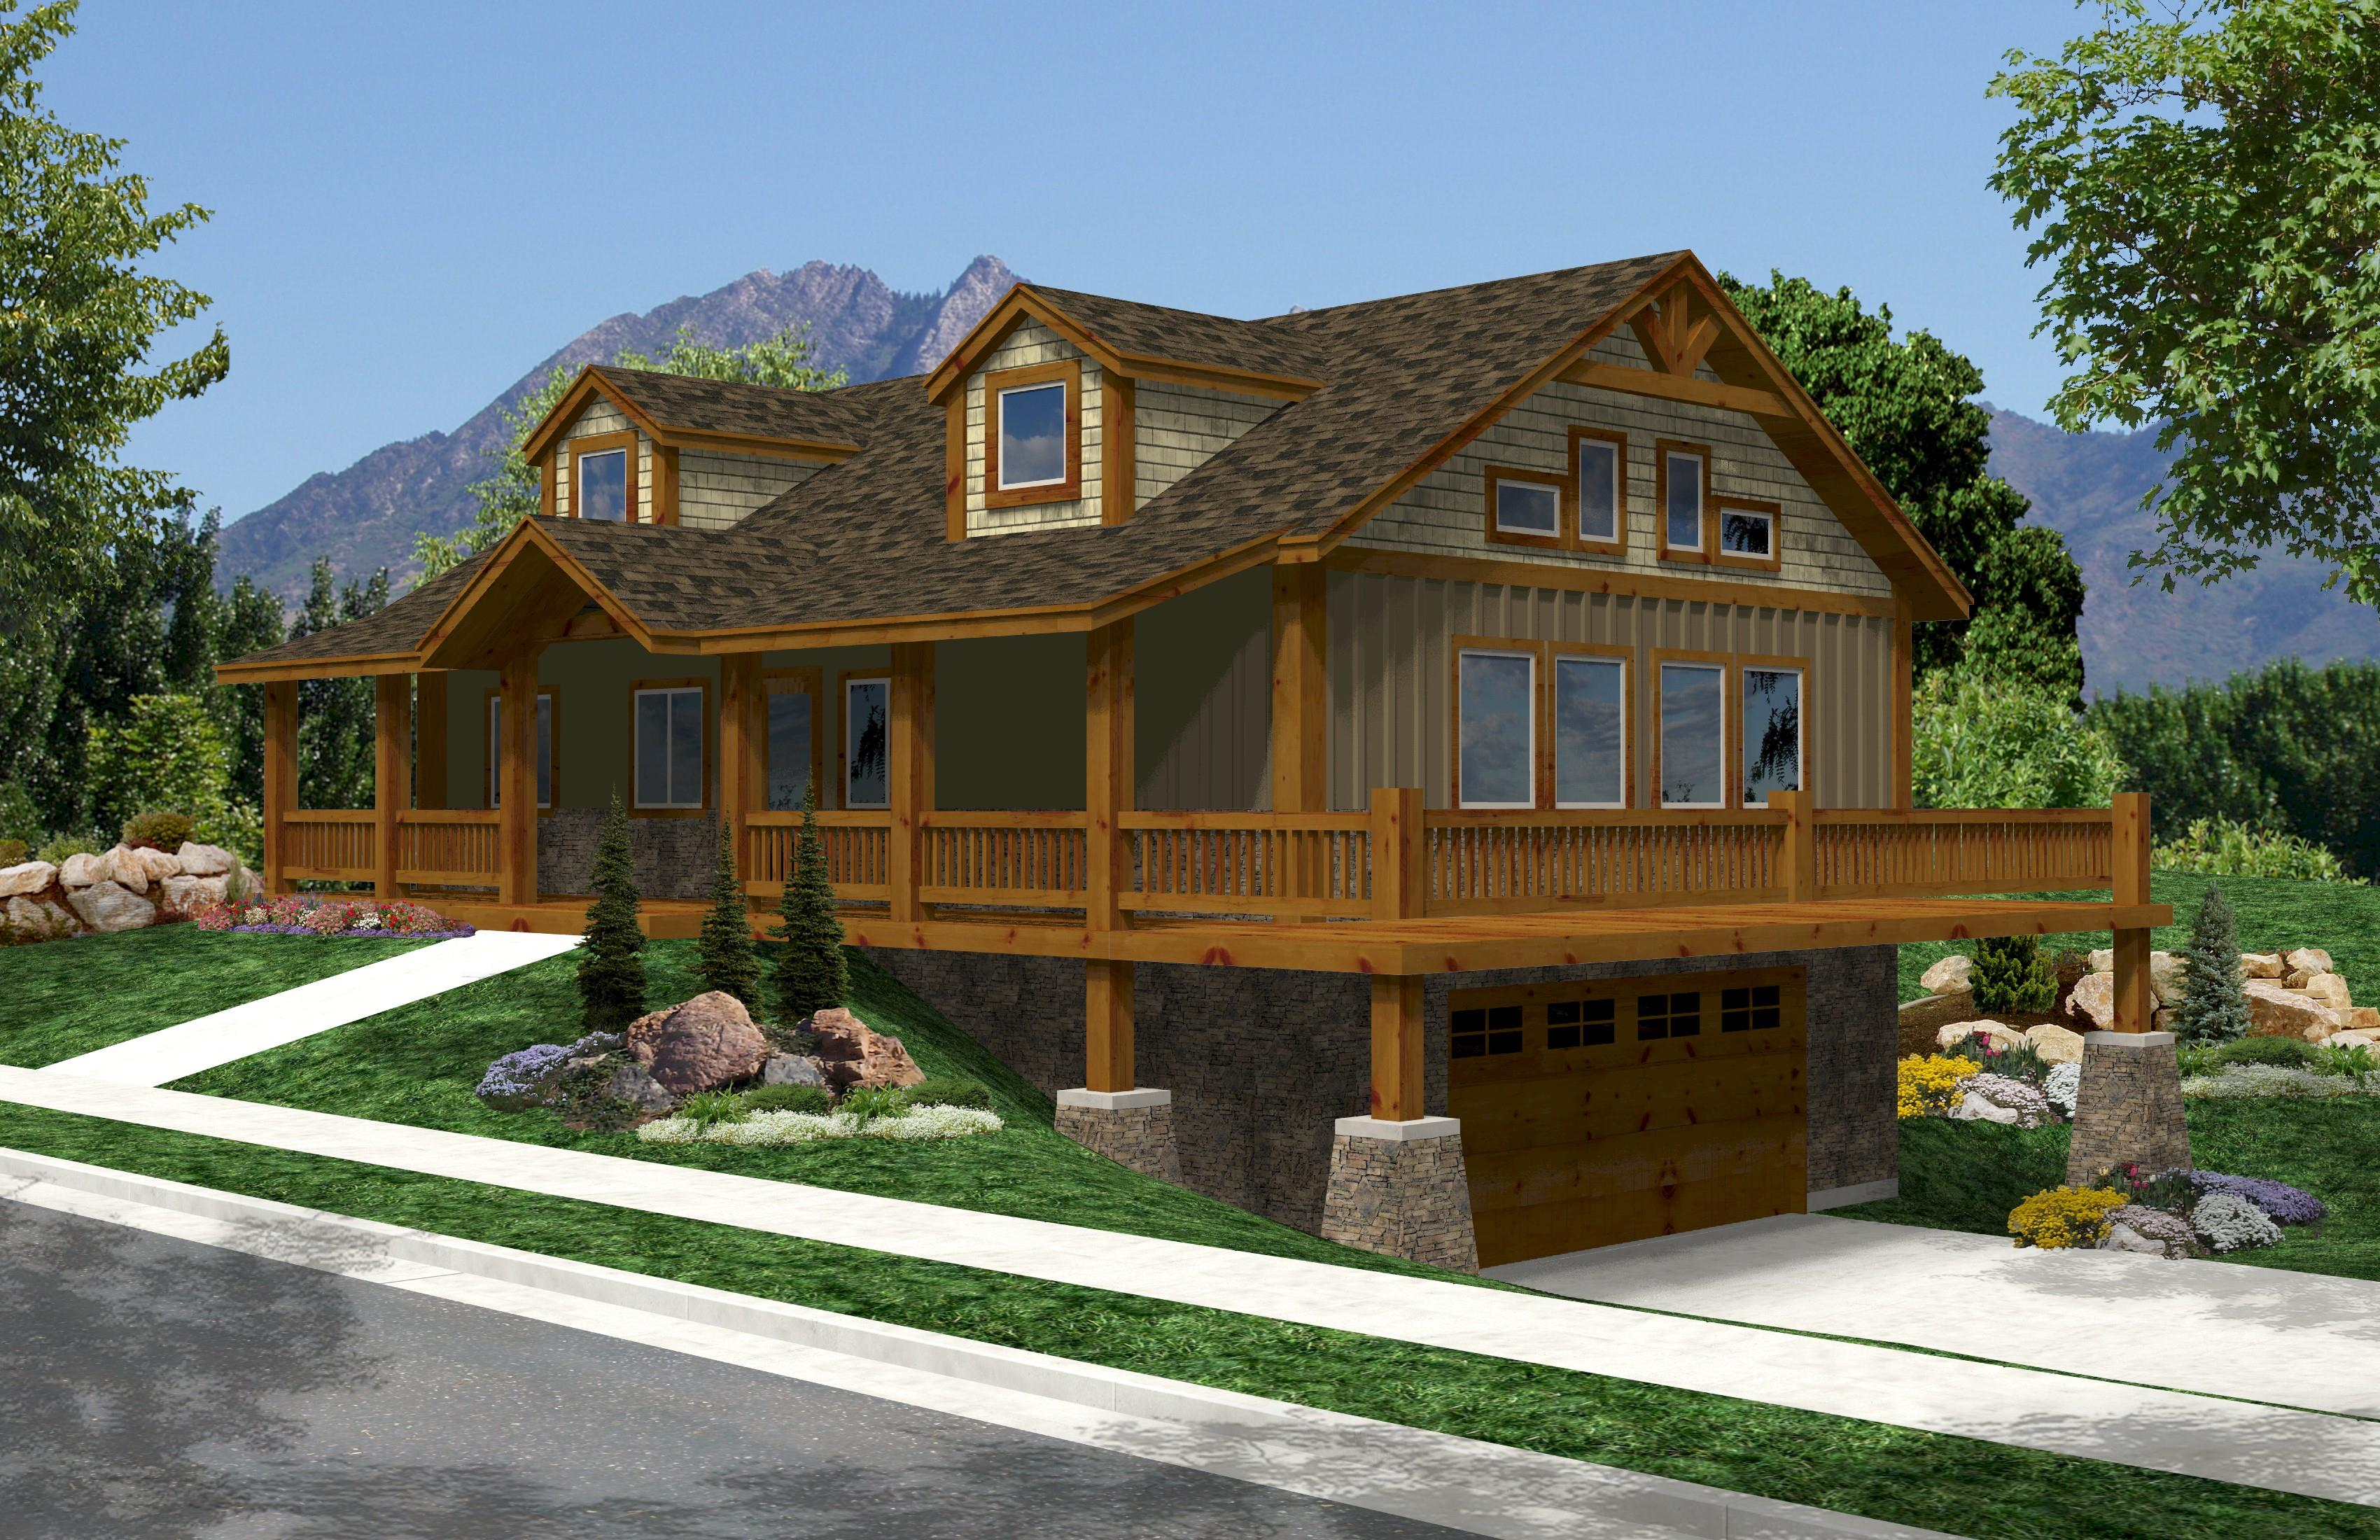 California log homeslog home floorplans ca log home plans ca ca log homeslog home floor plans log home floor plans ca log home floorplans